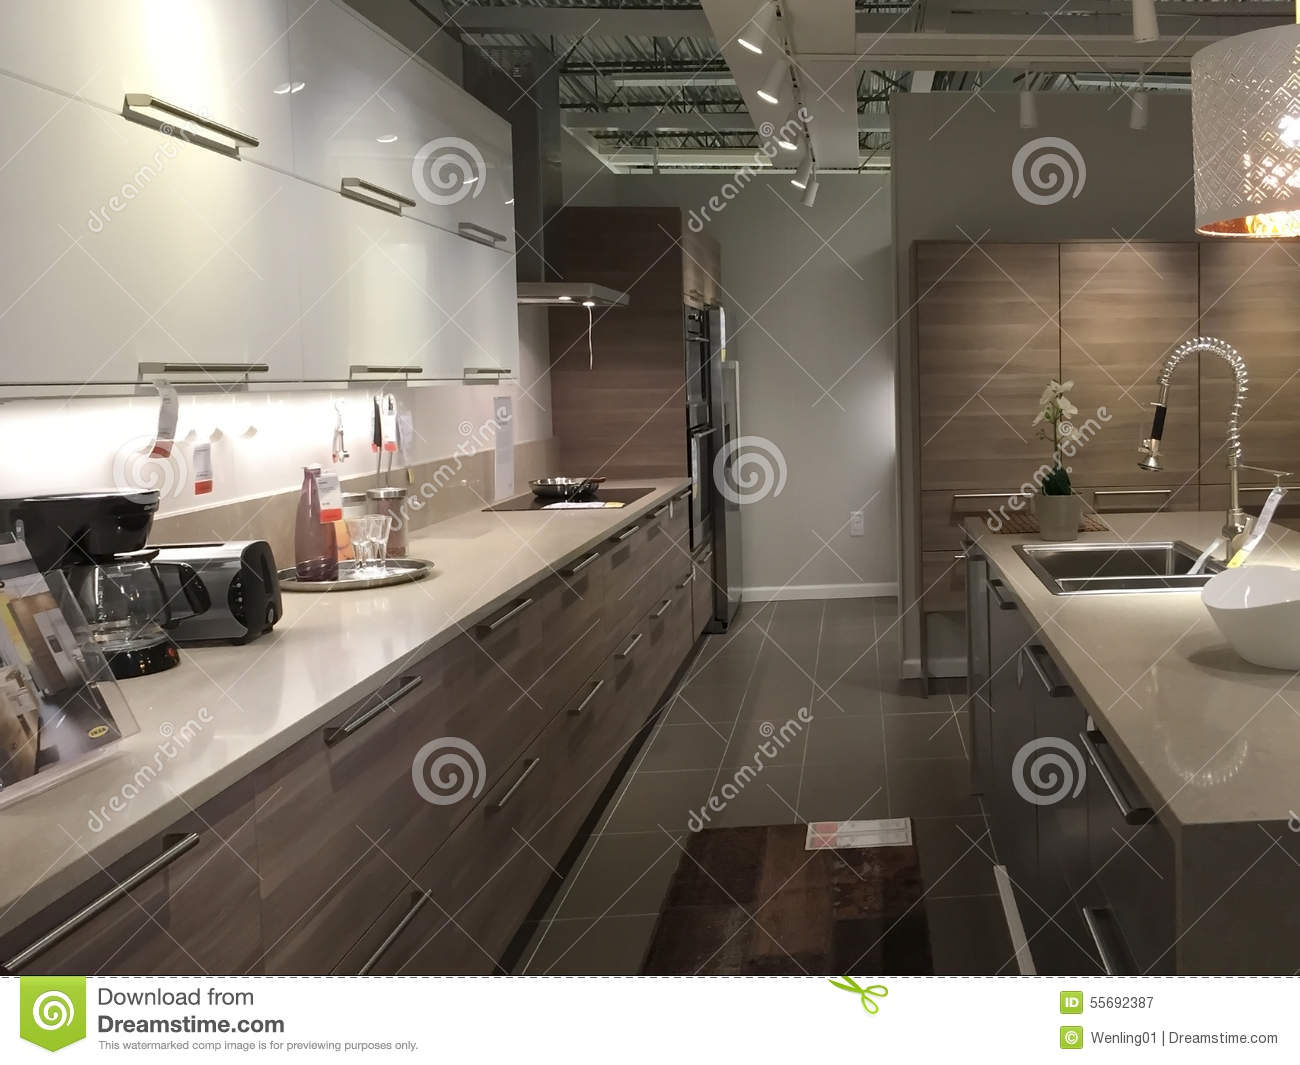 Clean And Neat Modern Kitchen Royalty Free Stock Photography